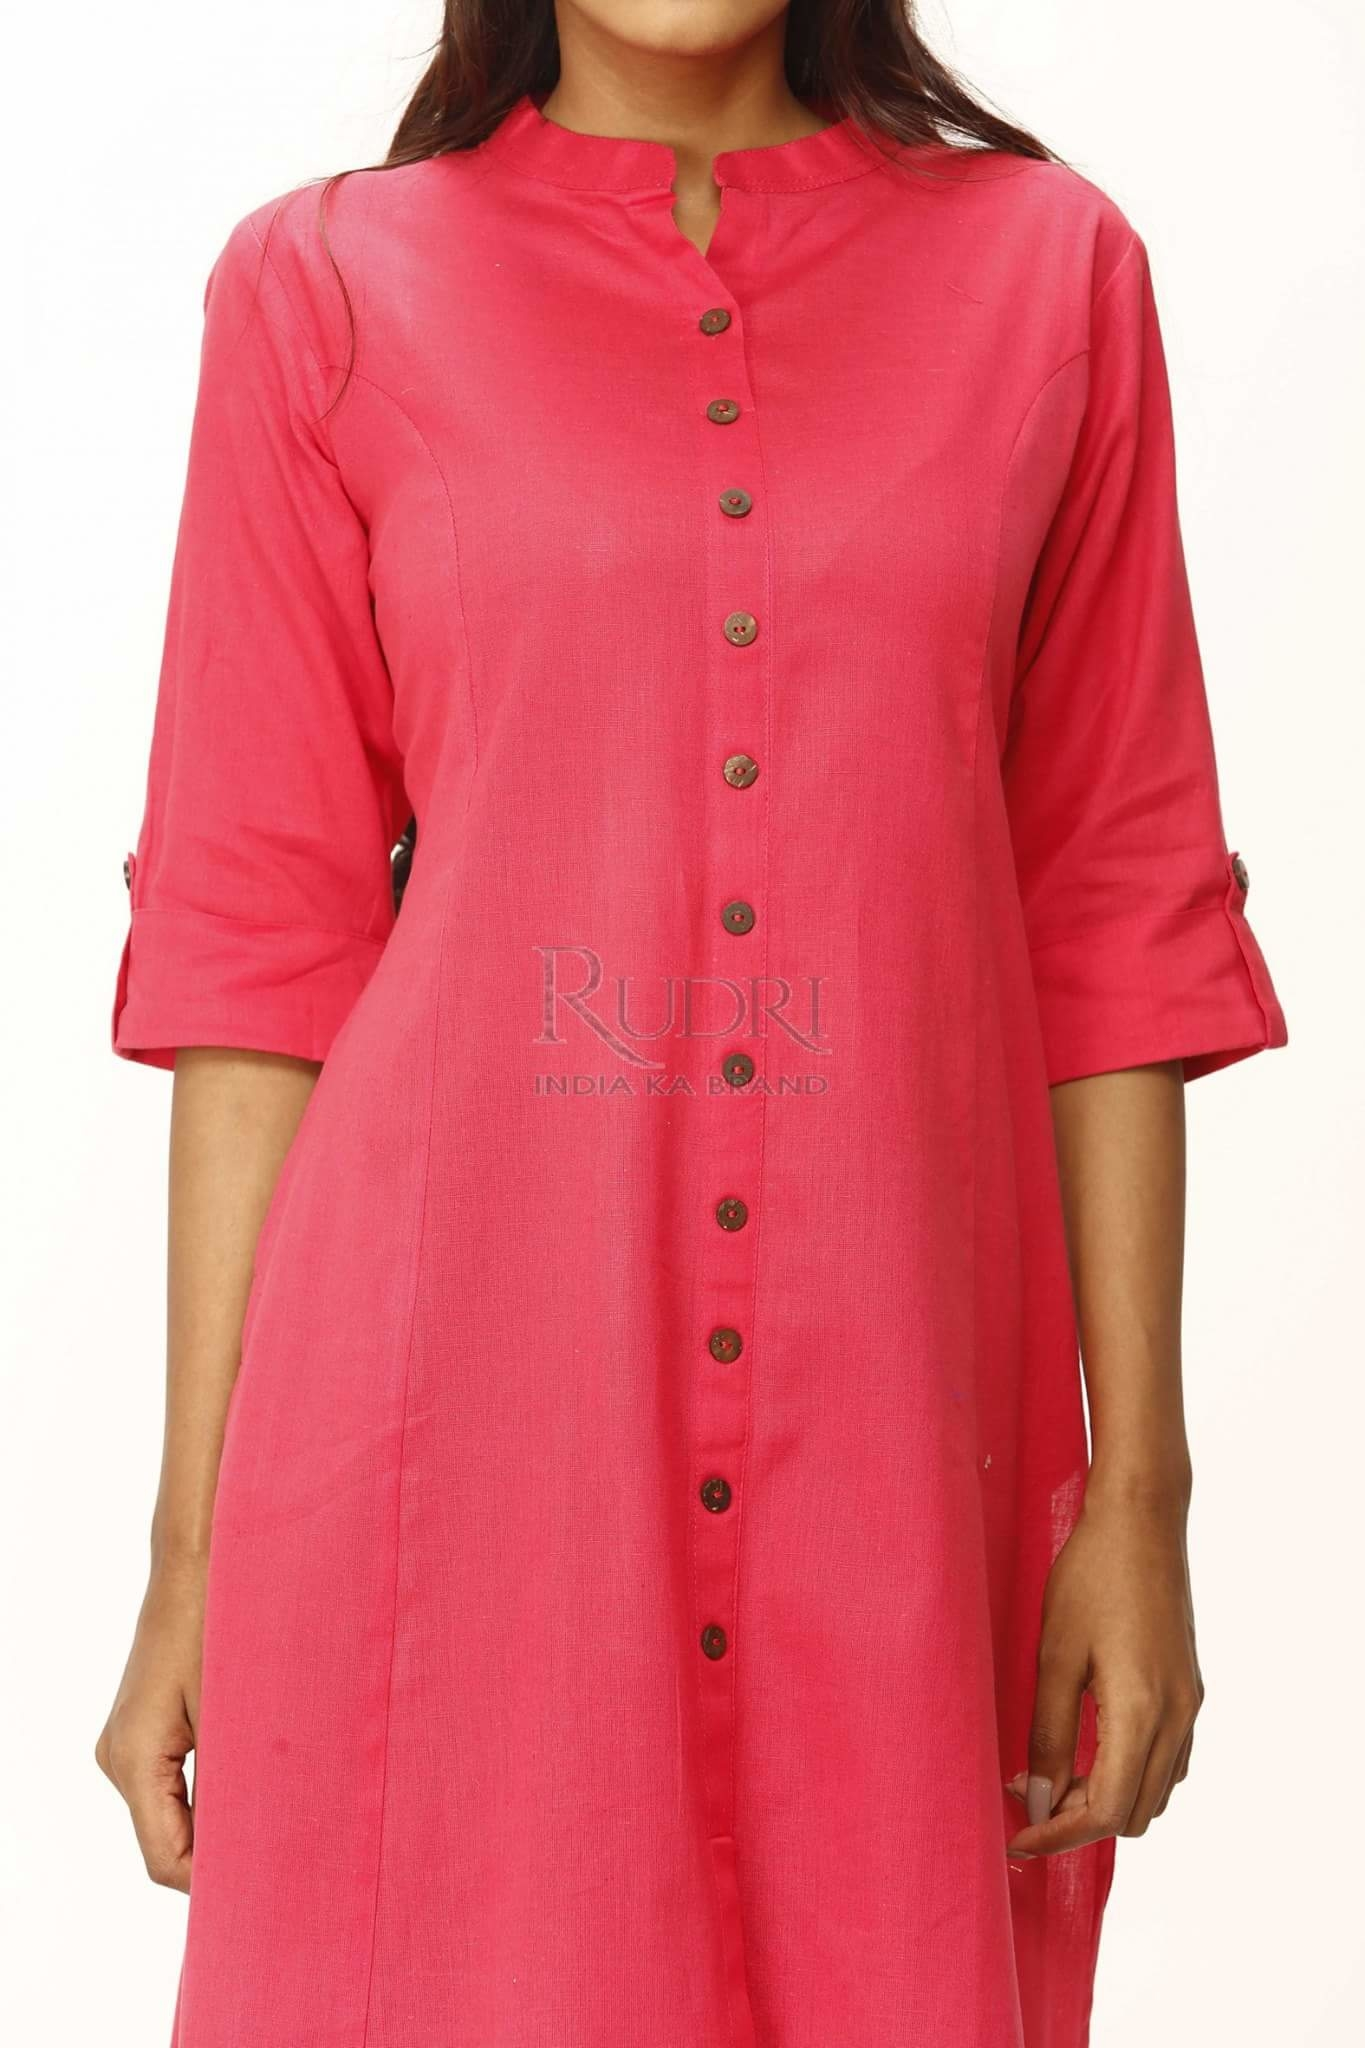 The Beautiful Hue Of Tomato Pink In Cotton Linen Kurti By Rudri. http://www.rudri.in/rdk03.html #Exclusive #Kurtis #IndianFashion #fashion #casualstyle #NewTrend